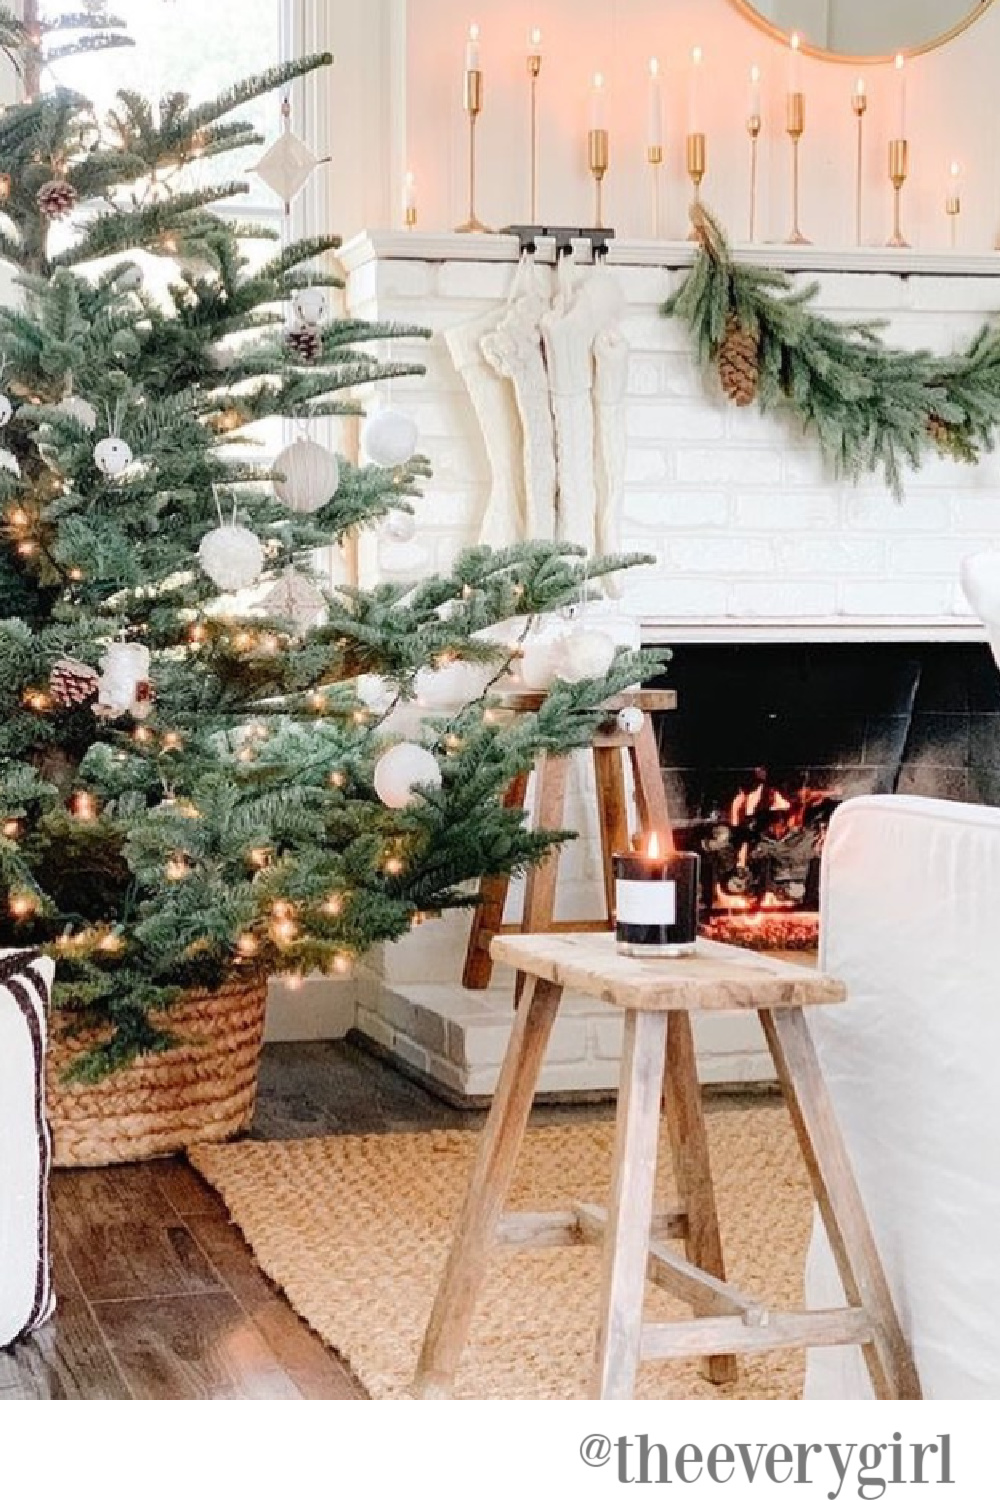 Farmhouse Christmas decor in a living room with white brick fireplace - The Every Girl. #whitechristmas #farmhousechristmas #christmastrees